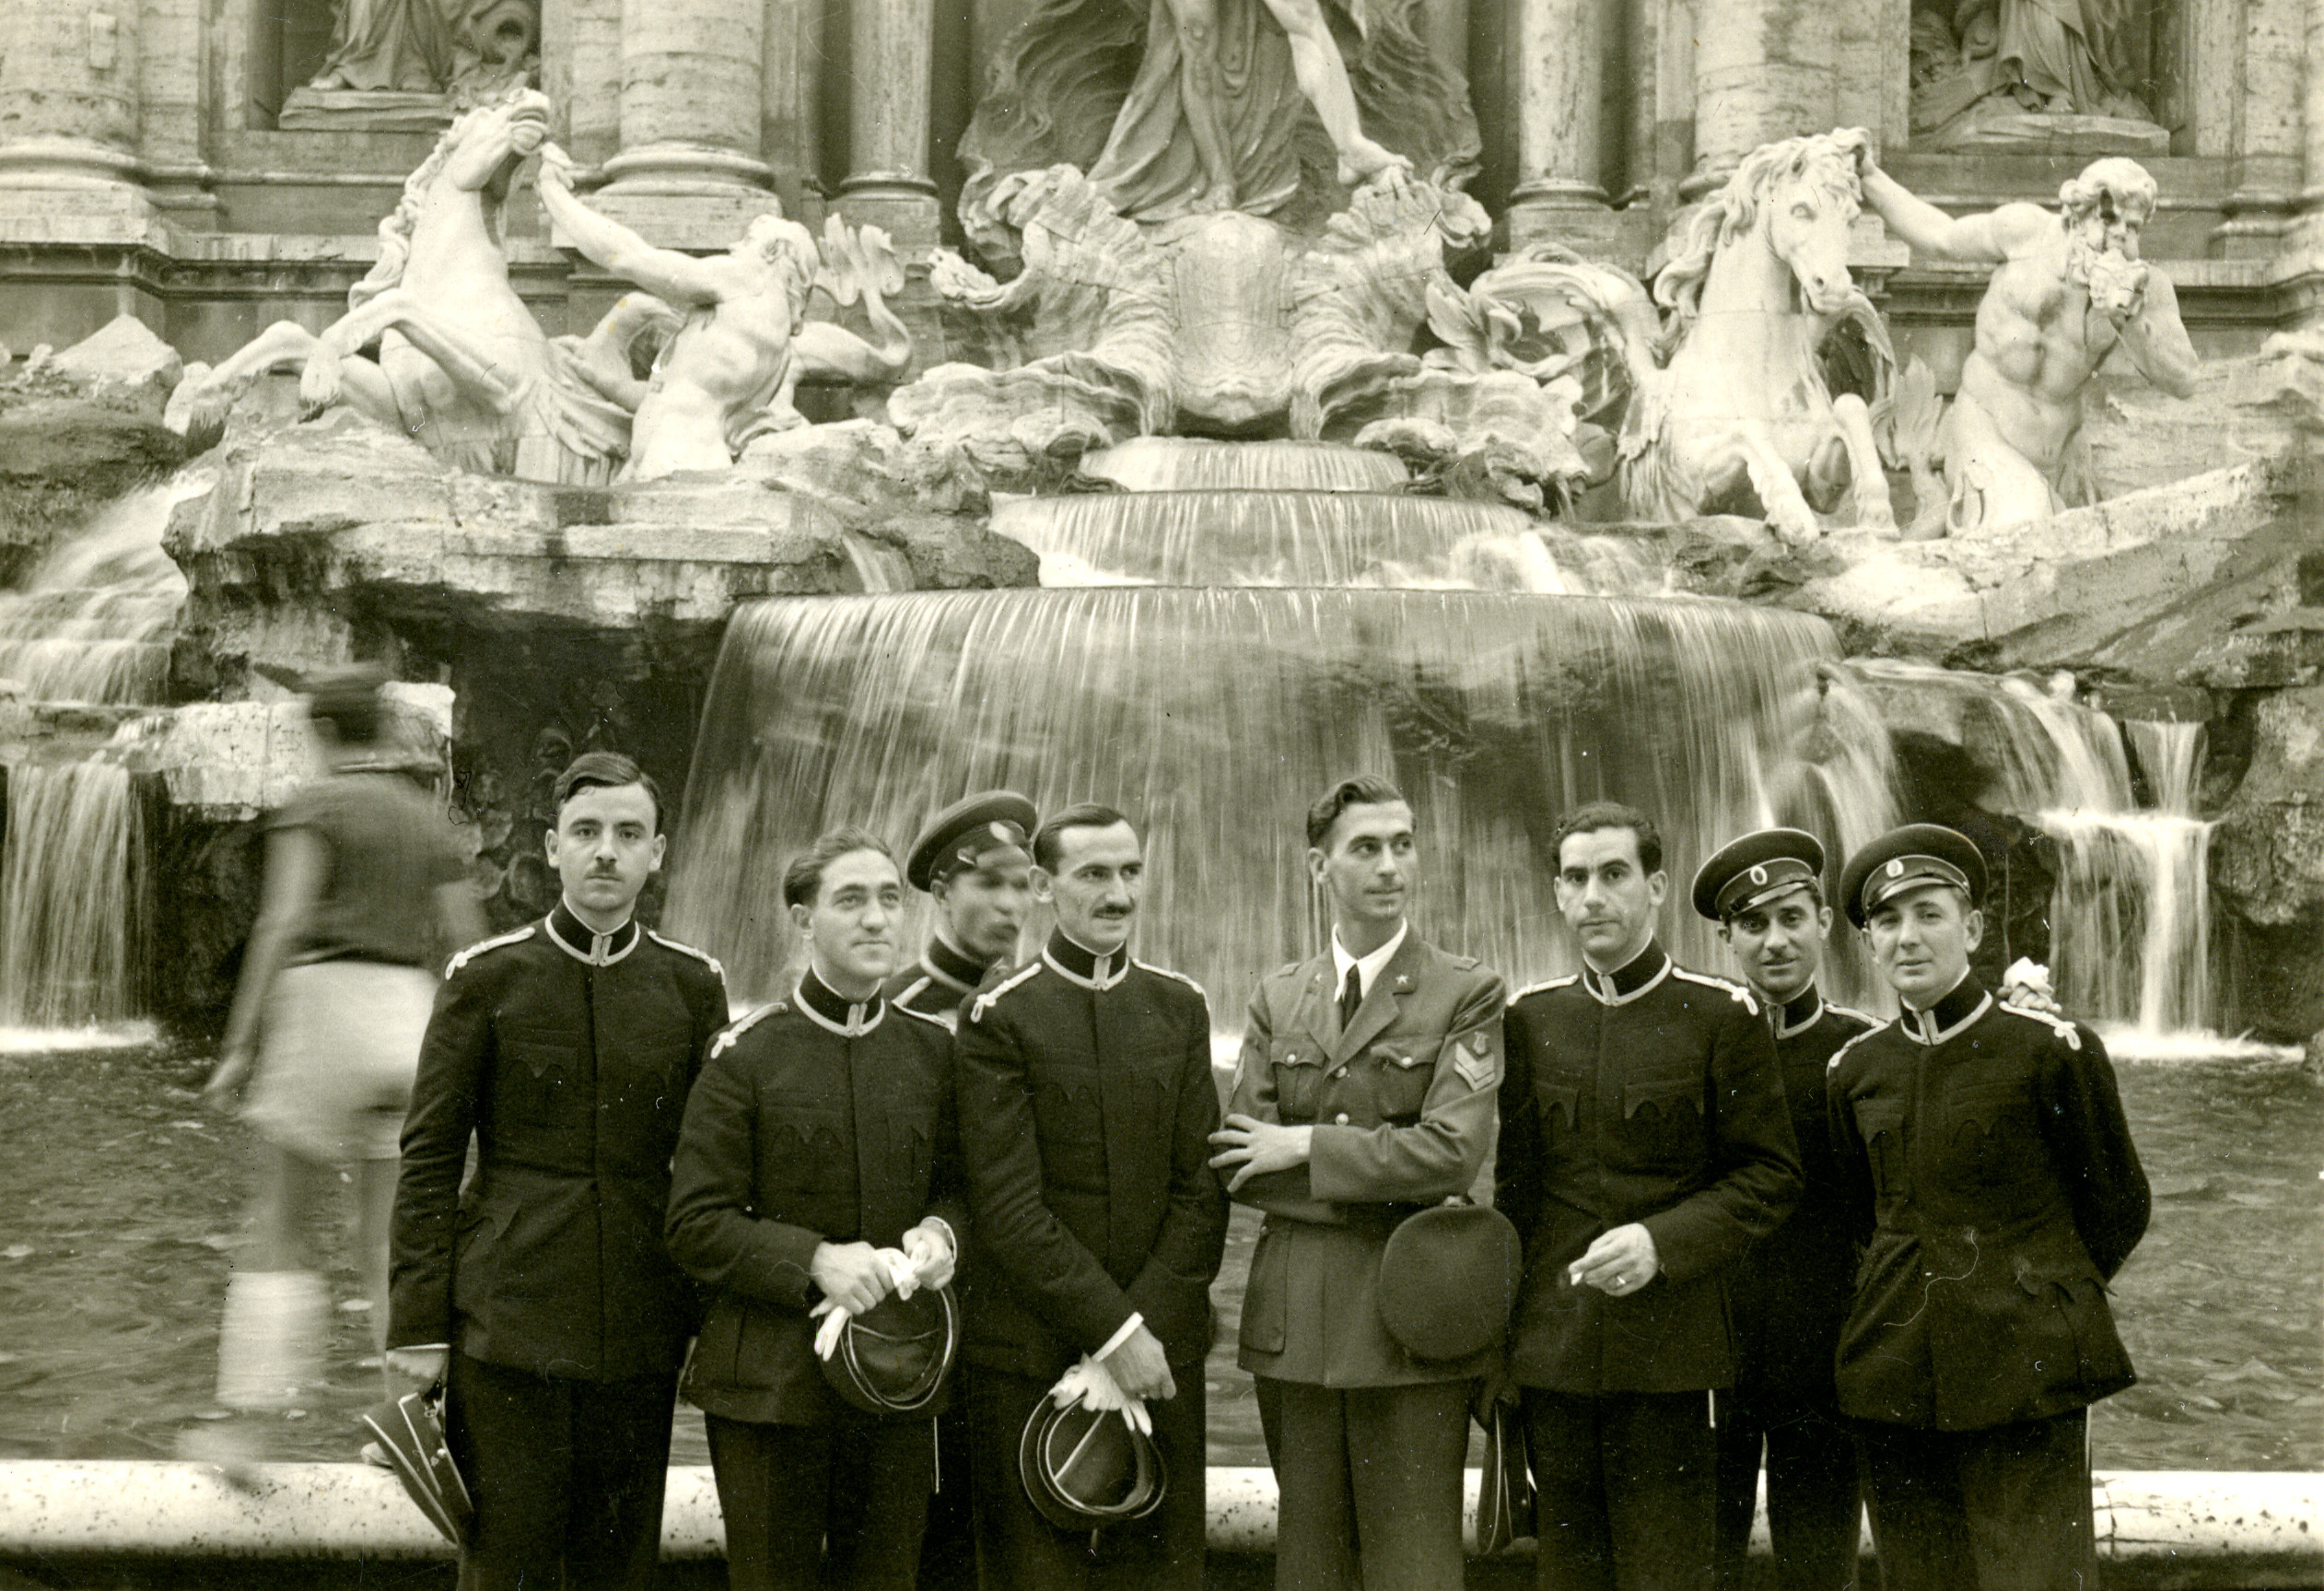 Musicians from the Bulgarian Tsar's symphony orchestra pose in front of the Trevi Fountain in Rome.  Among those pictured is Nissim Alkalay (standing second from the left).  There were three Jewish members of the orchestra:  Nissim, Rafael Sidi, and Jacques Savanov.  All three were expelled from the orchestra upon their return to Bulgaria.